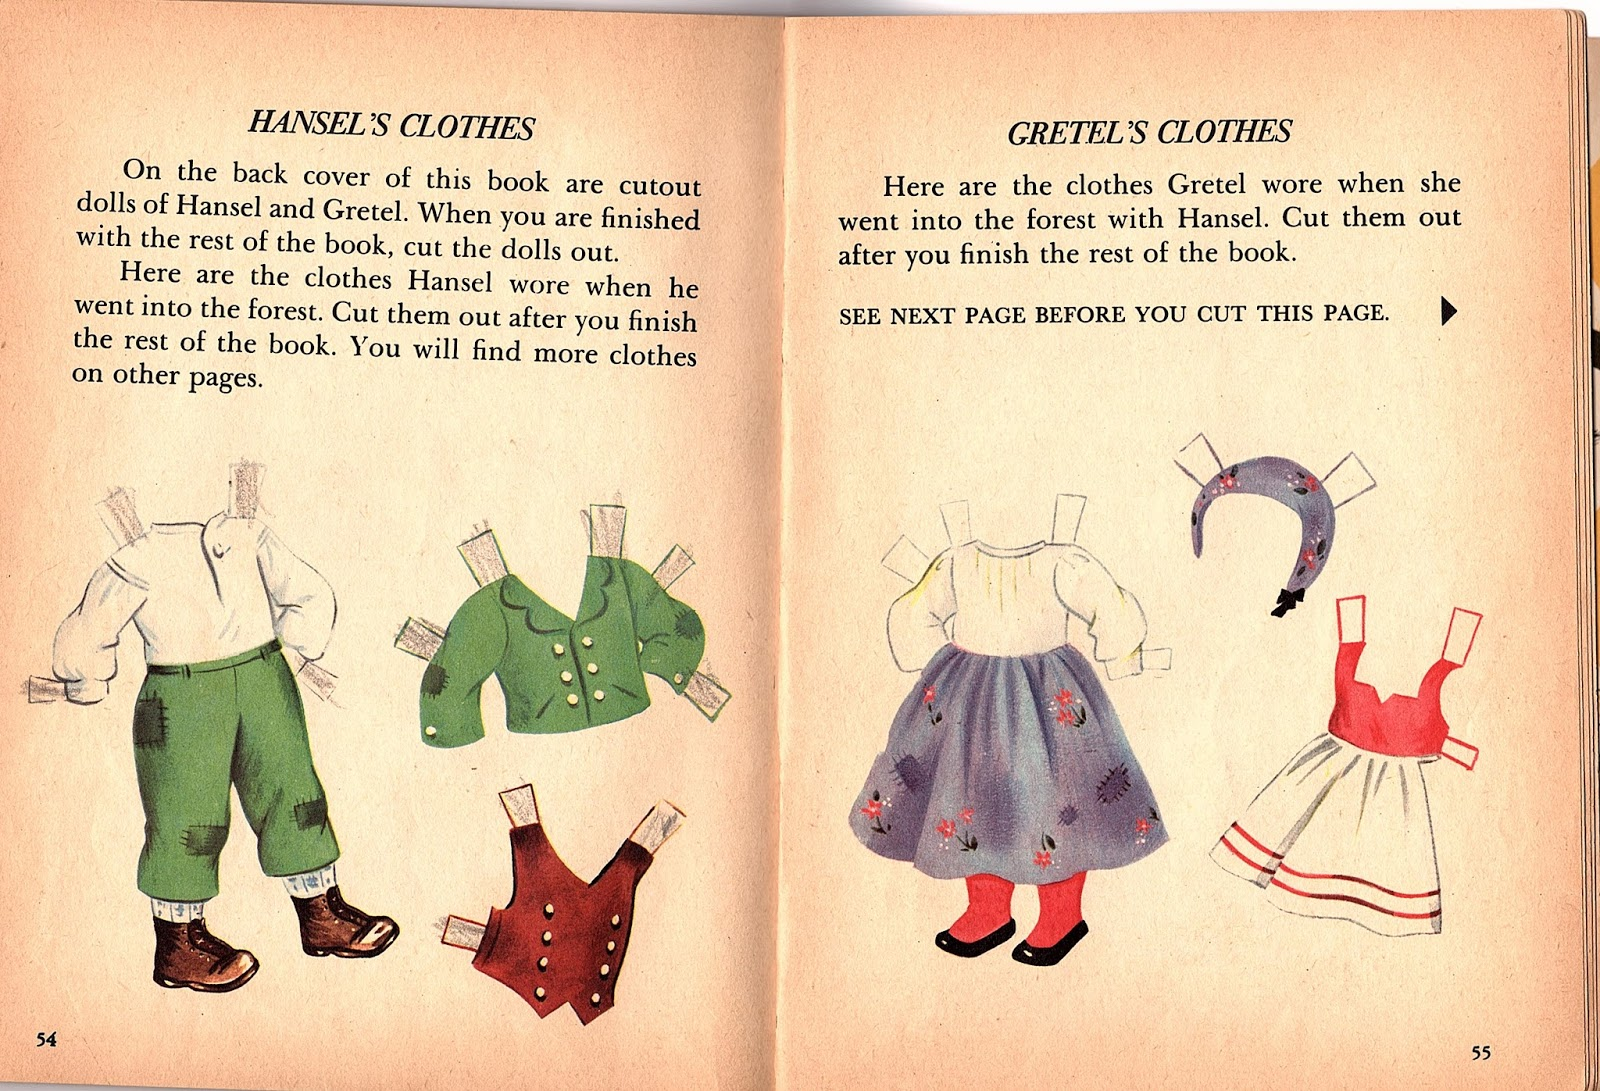 """research paper on hansel and gretel Research: a fairy tale the above search finds anything about """"hansel and gretel"""" that also talks about literary research."""